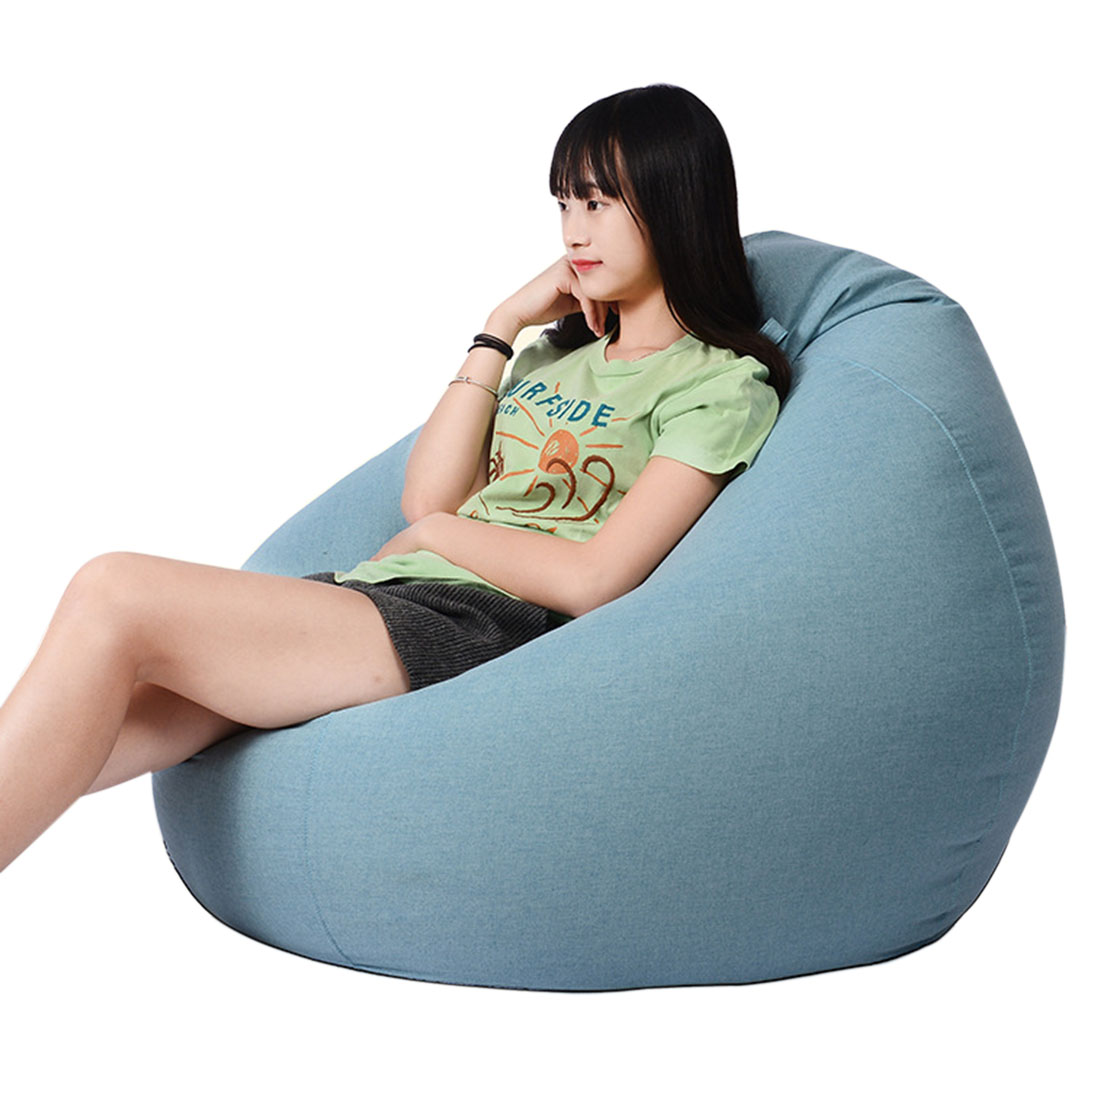 Living Room Bean Bag Sofas Adult Kids Reading Relax Bean Bag Living Room Lazy Sofas Lazy Bean Bag Sofas Living Room Furniture